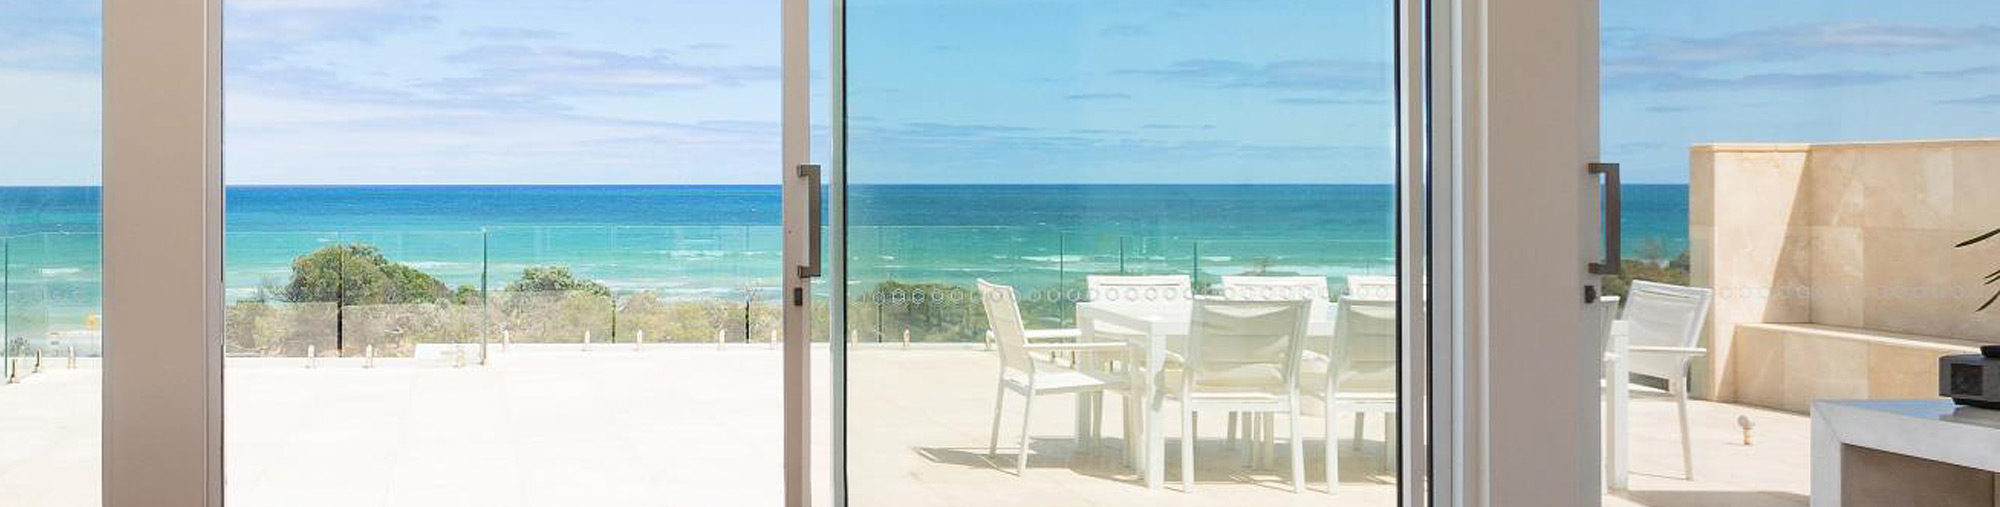 aluminium sliding doors to beach view